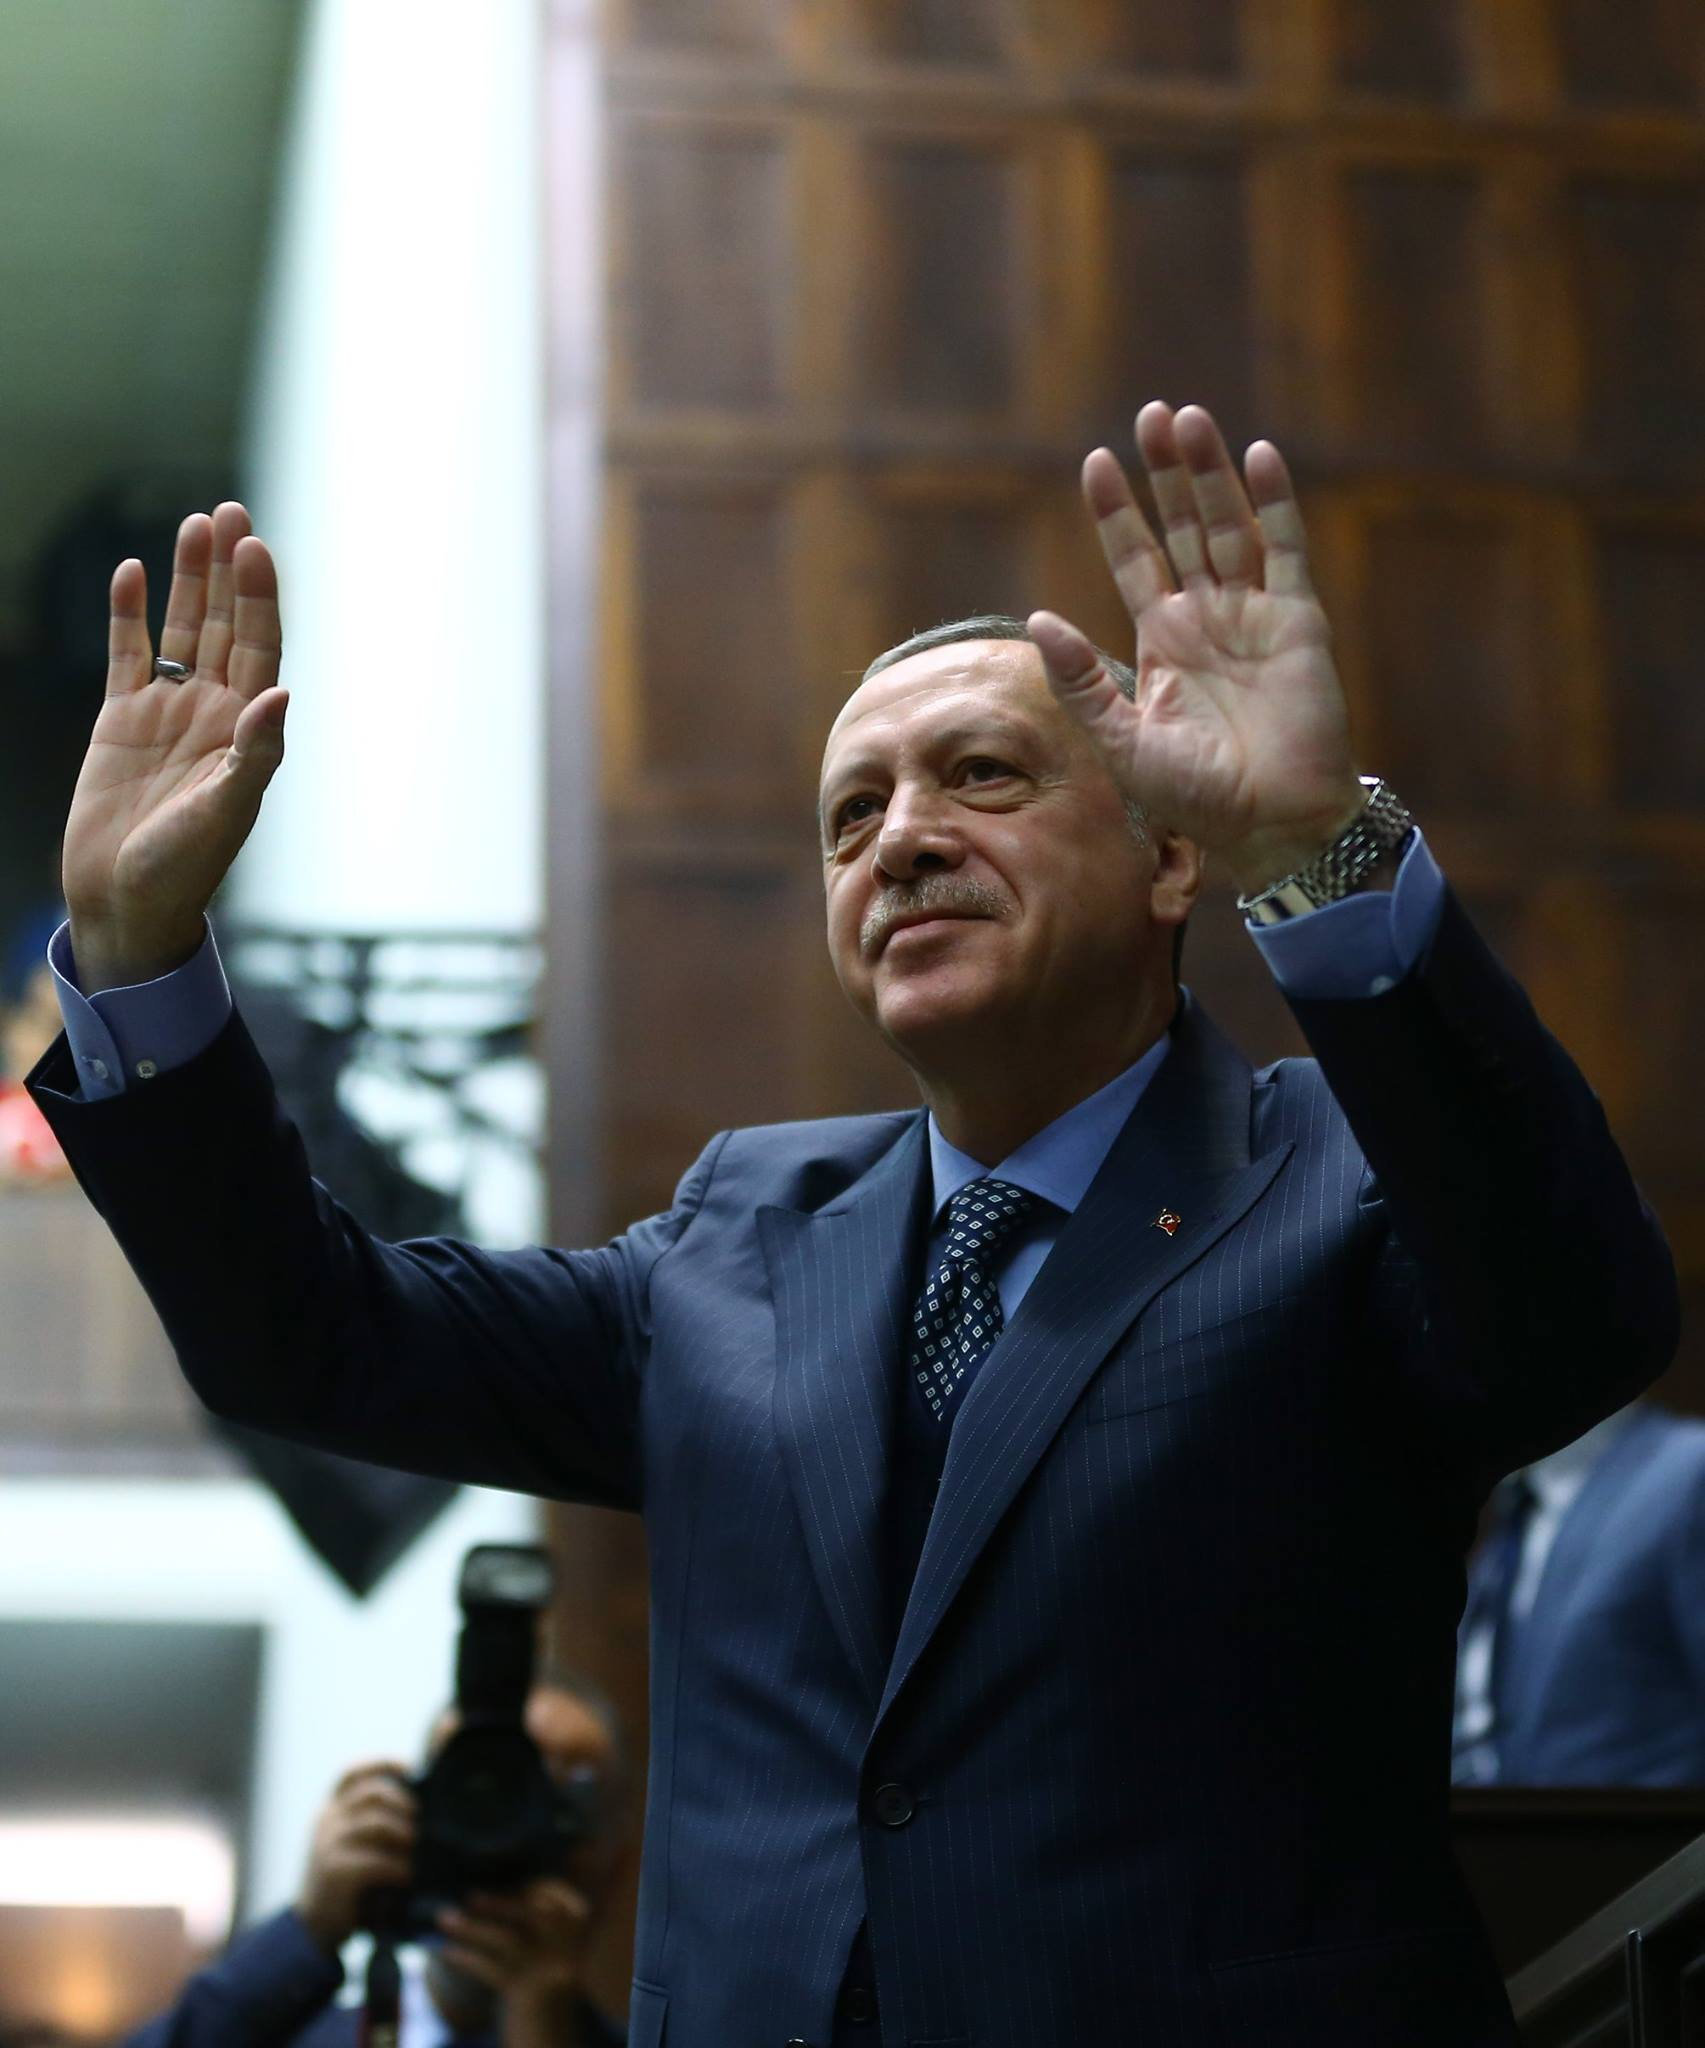 Recep Tayyip Erdogan arrived in Athens Thursday for the first official visit to Greece by a Turkish president in decades, with Greece hoping the trip will help improve often frosty ties with its neighbour and NATO ally. (File photo from  Recep Tayyip Erdoğan/Facebook)